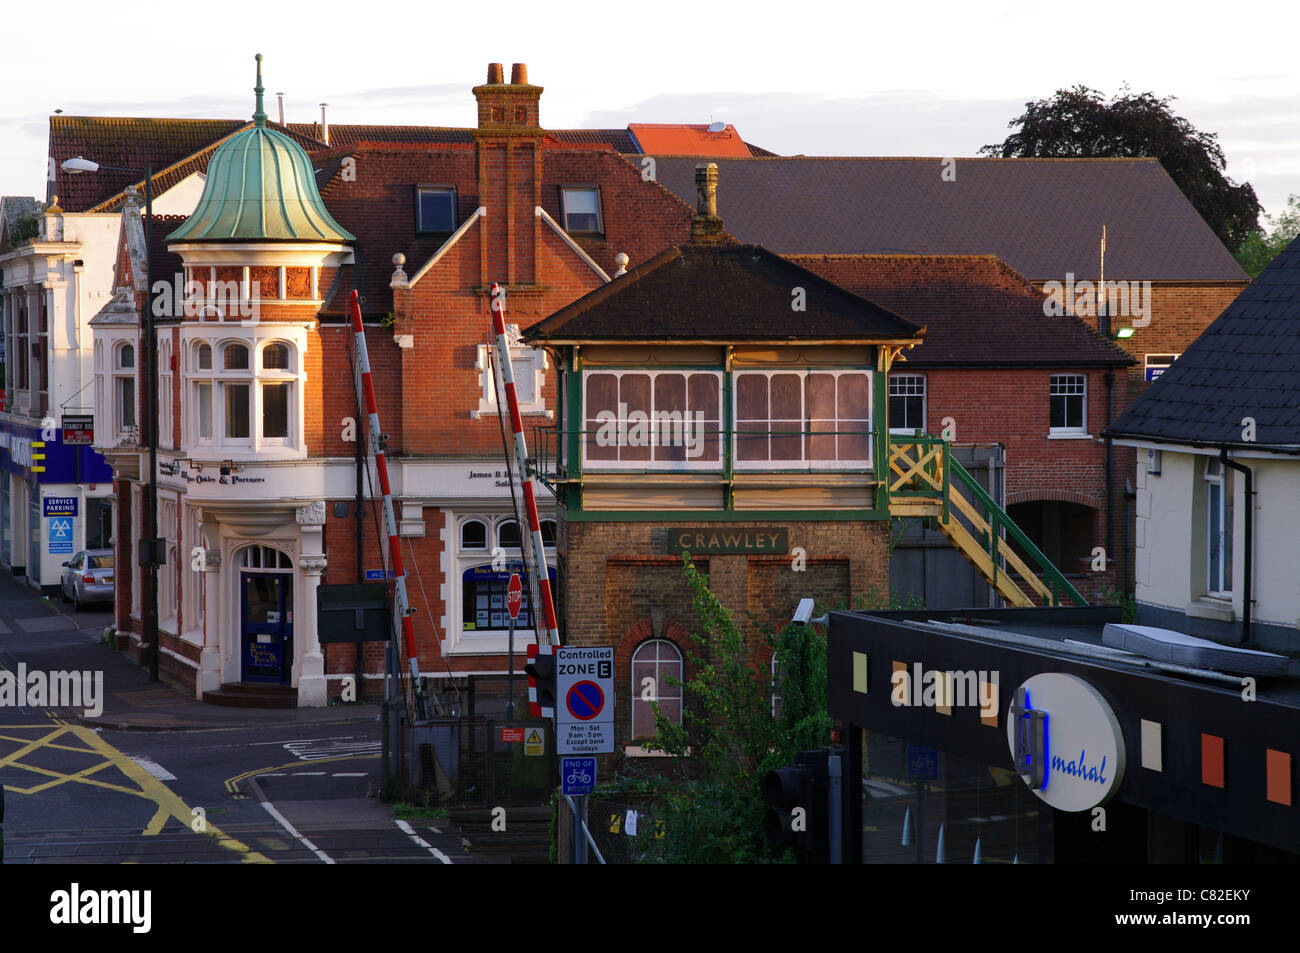 Crawley 'old' Station - Stock Image